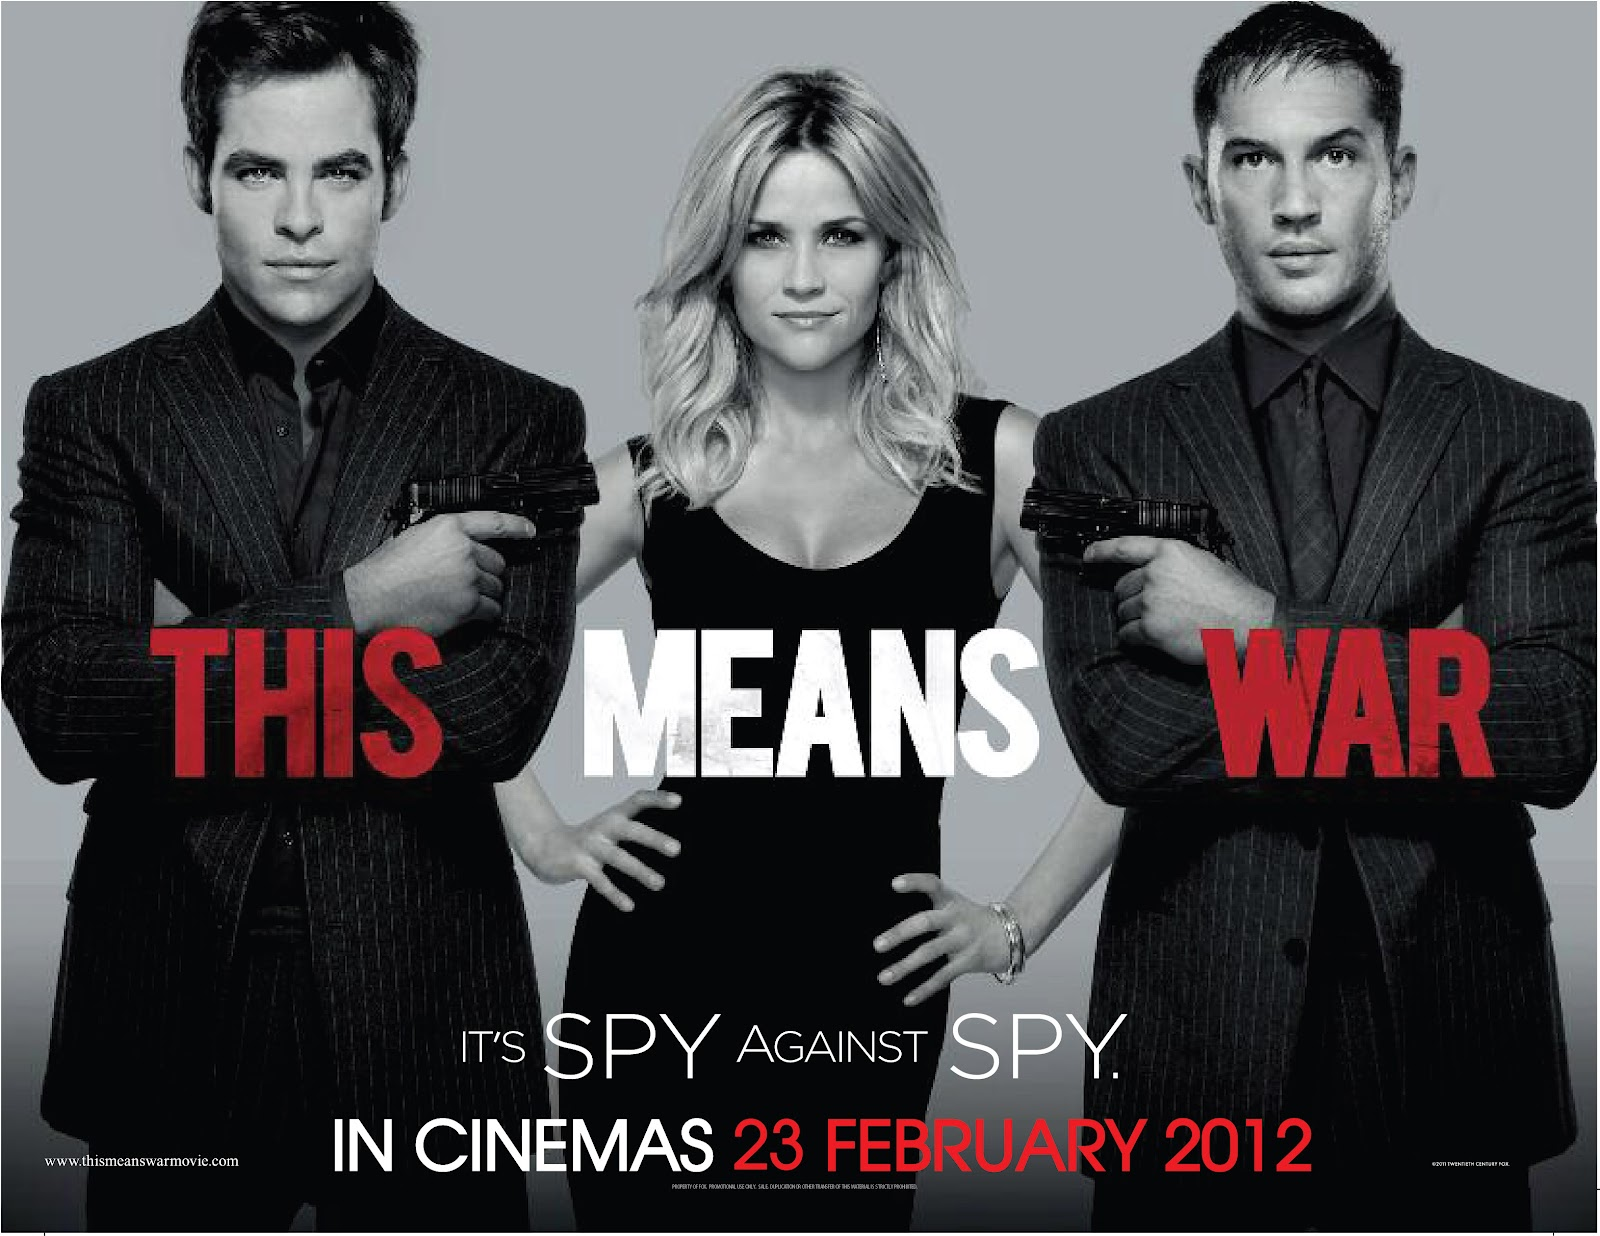 http://4.bp.blogspot.com/-mzda2d6zt5M/T7qml2avFpI/AAAAAAAAASw/wuuOSvQm7D0/s1600/This+Means+War+2012+film+movie+poster+wallpaper.jpg